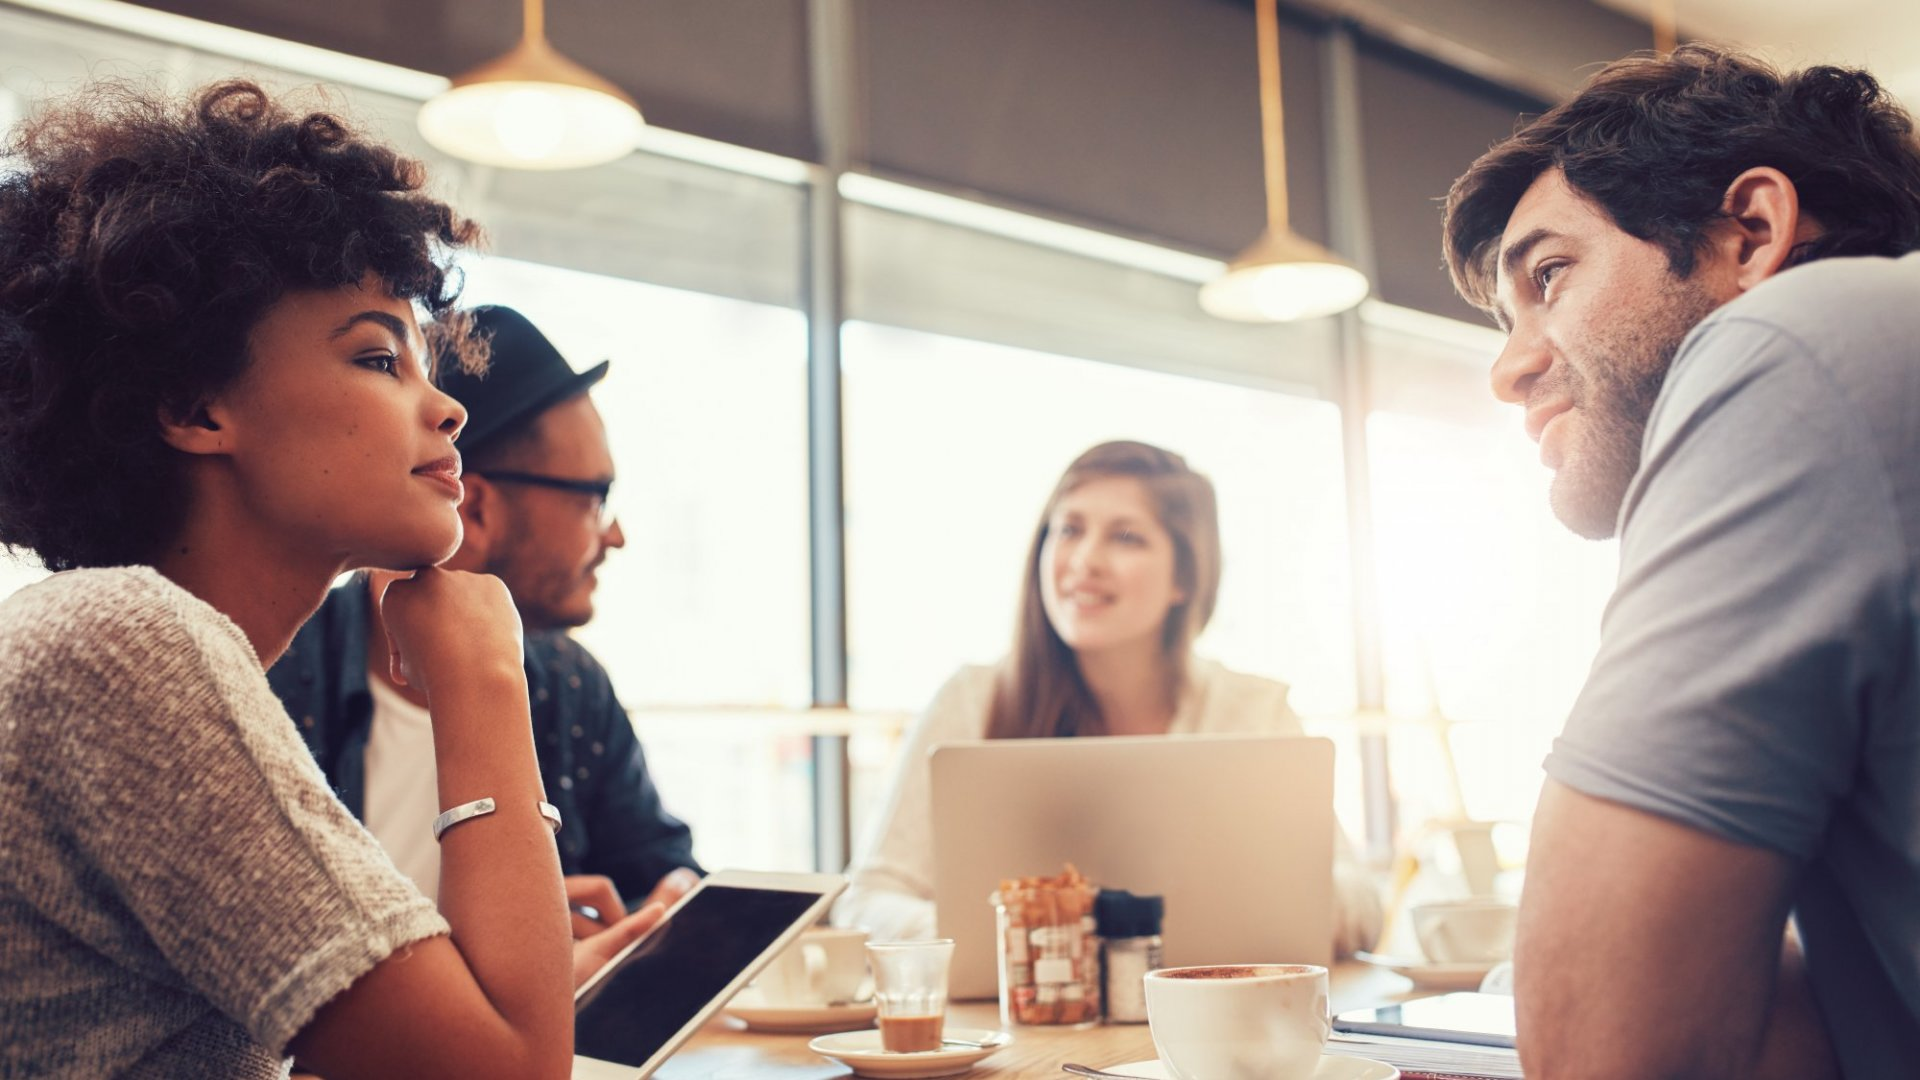 Connecting on LinkedIn Is Not Enough: 4 Steps to Build Relationships That Mean Something